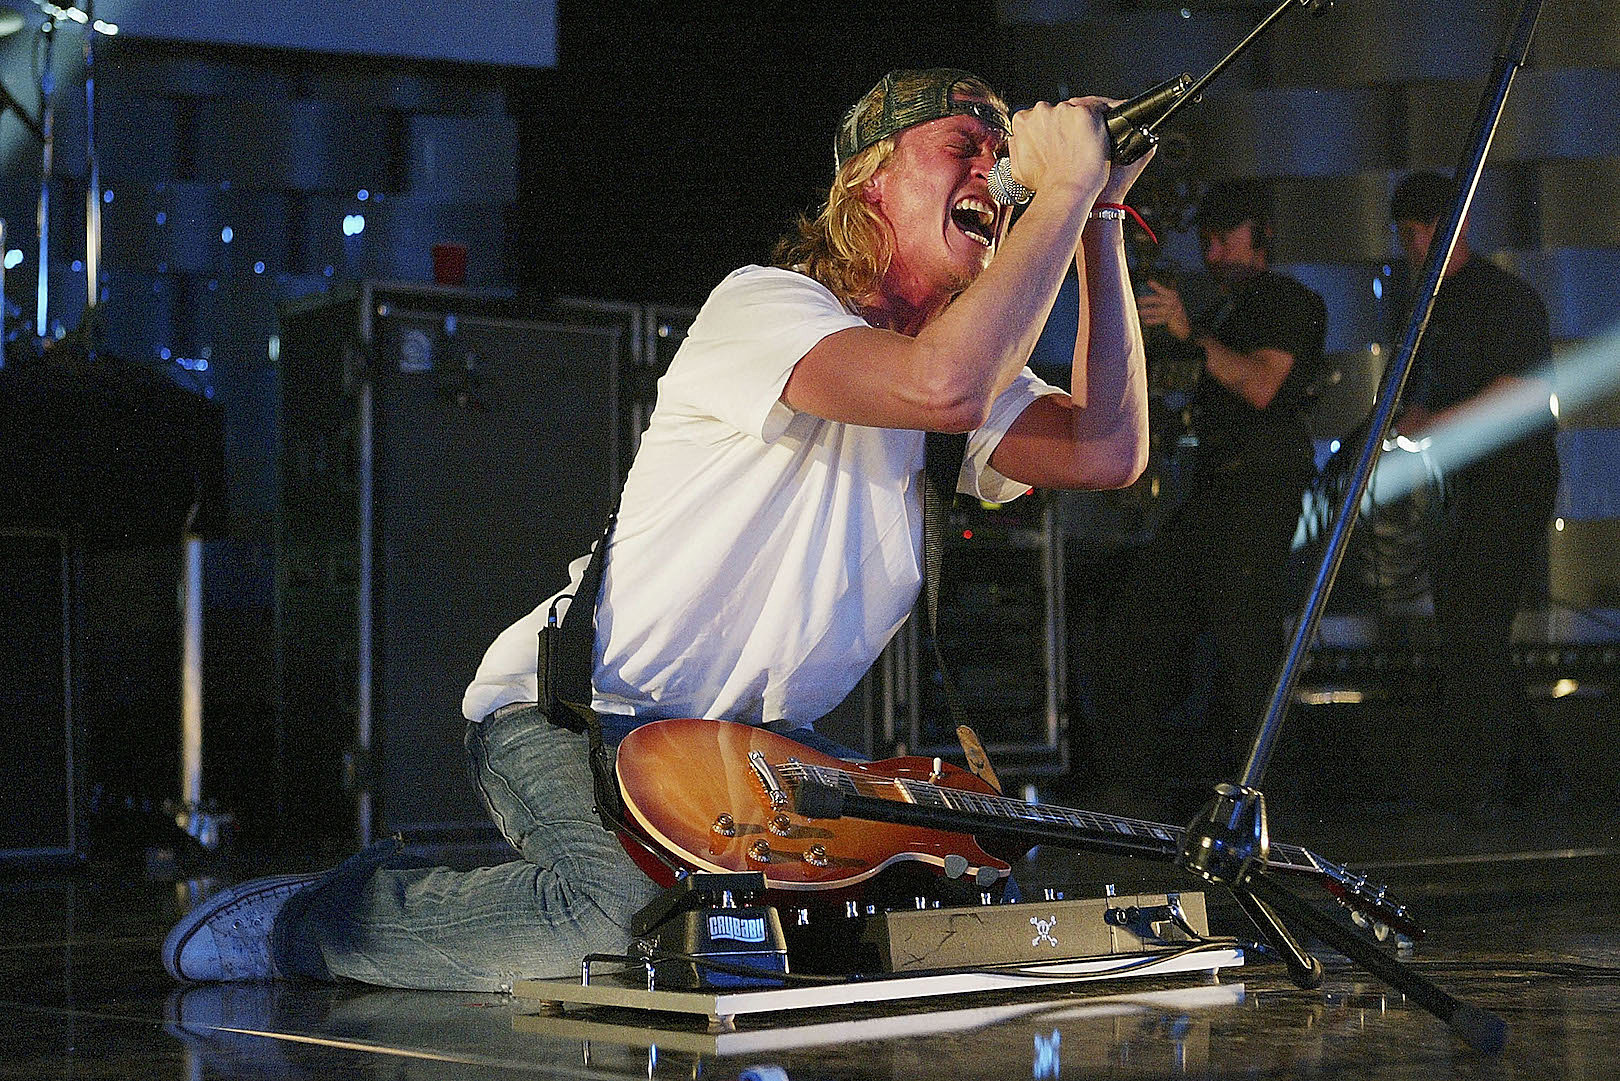 Wes Scantlin Reportedly Six Months Sober, Puddle of Mudd to Tour